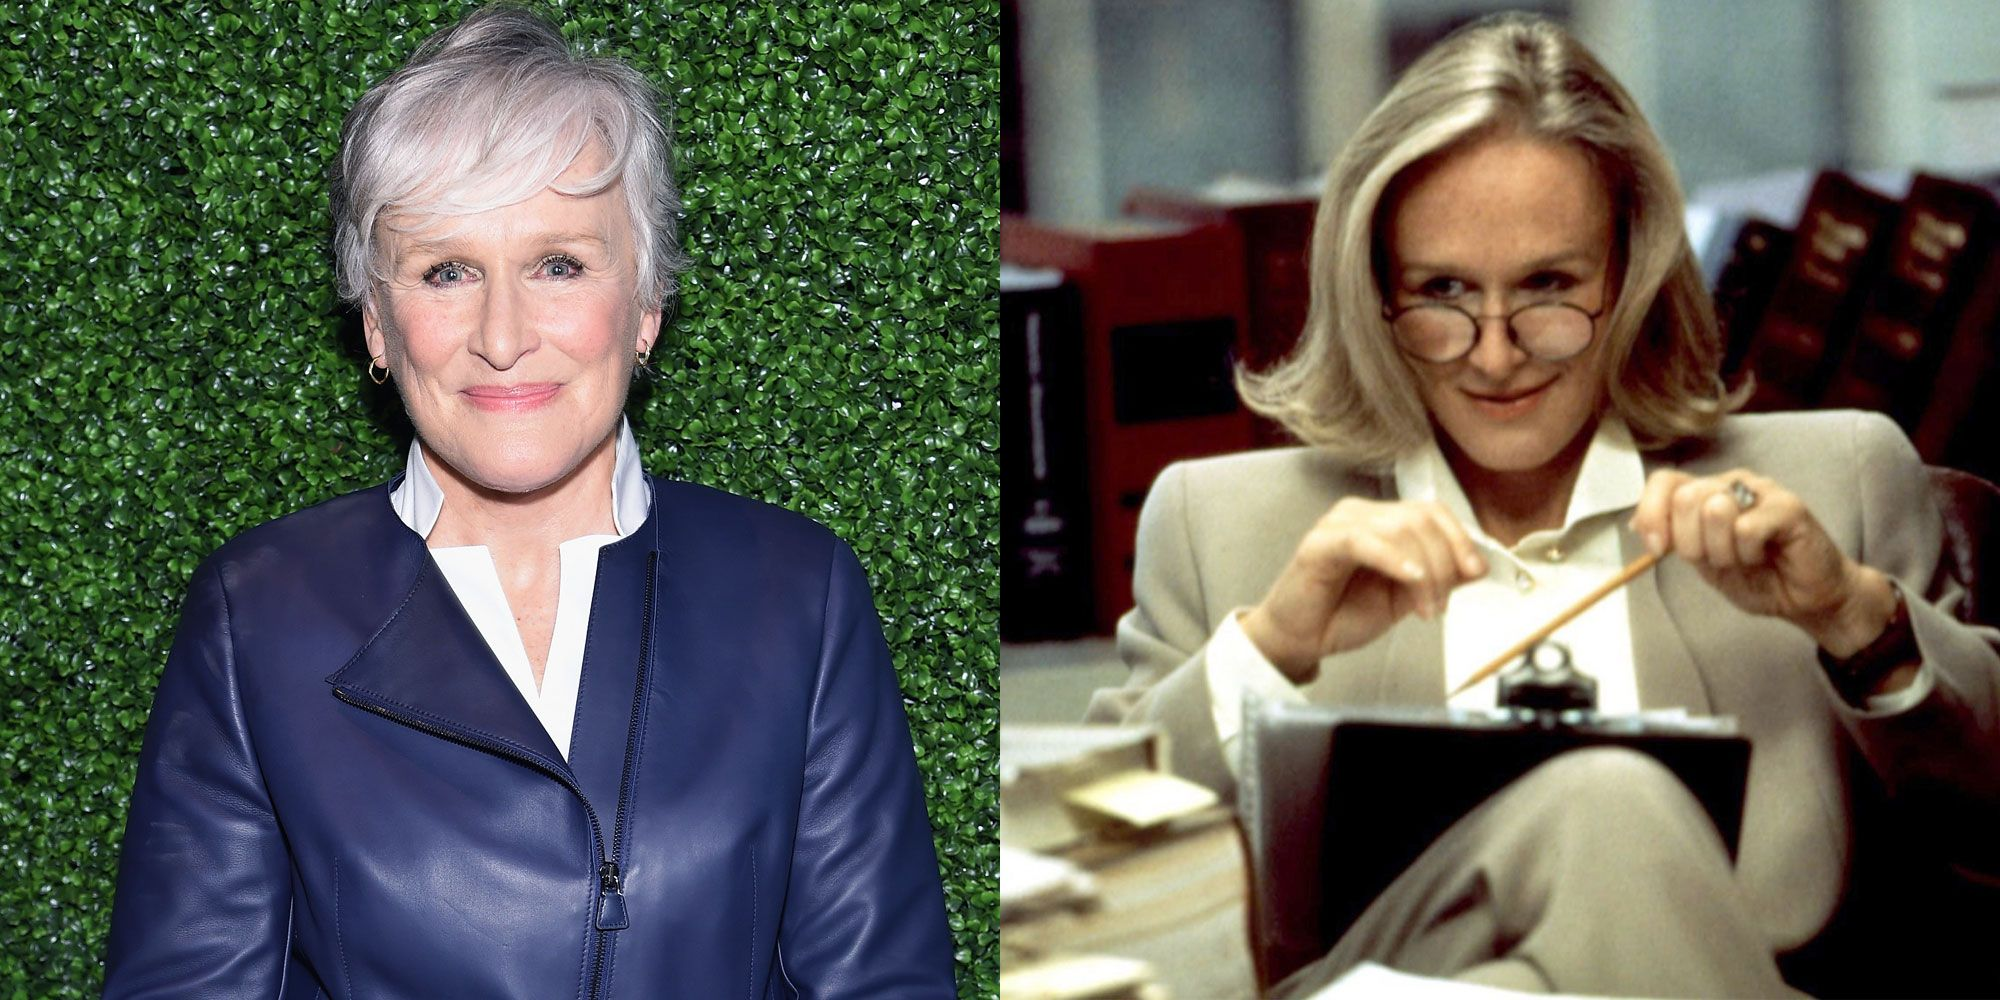 "<p>          In 1994 comedy <em>The Paper</em>, Glenn Close plays a managing editor named Alicia Clark who is the nemesis of Michael Keaton's metro editor. Her no-nonsense character was initially written for a man, but writer Stephen Koepp <a href=""http://articles.mcall.com/1994-03-25/features/2956759_1_school-cafeteria-ron-howard-stephen-koepp/2"">explained in an interview</a>, ""We did some polishing of the script after Glenn was hired, but essentially it's the same character. The character is an archetype—the bean-counter who keeps the pens and pencils in a vault."" Close was so keen on maintaining the original vision of Clark, in fact, she insisted they keep the fistfight between her and Keaton.   </p>"